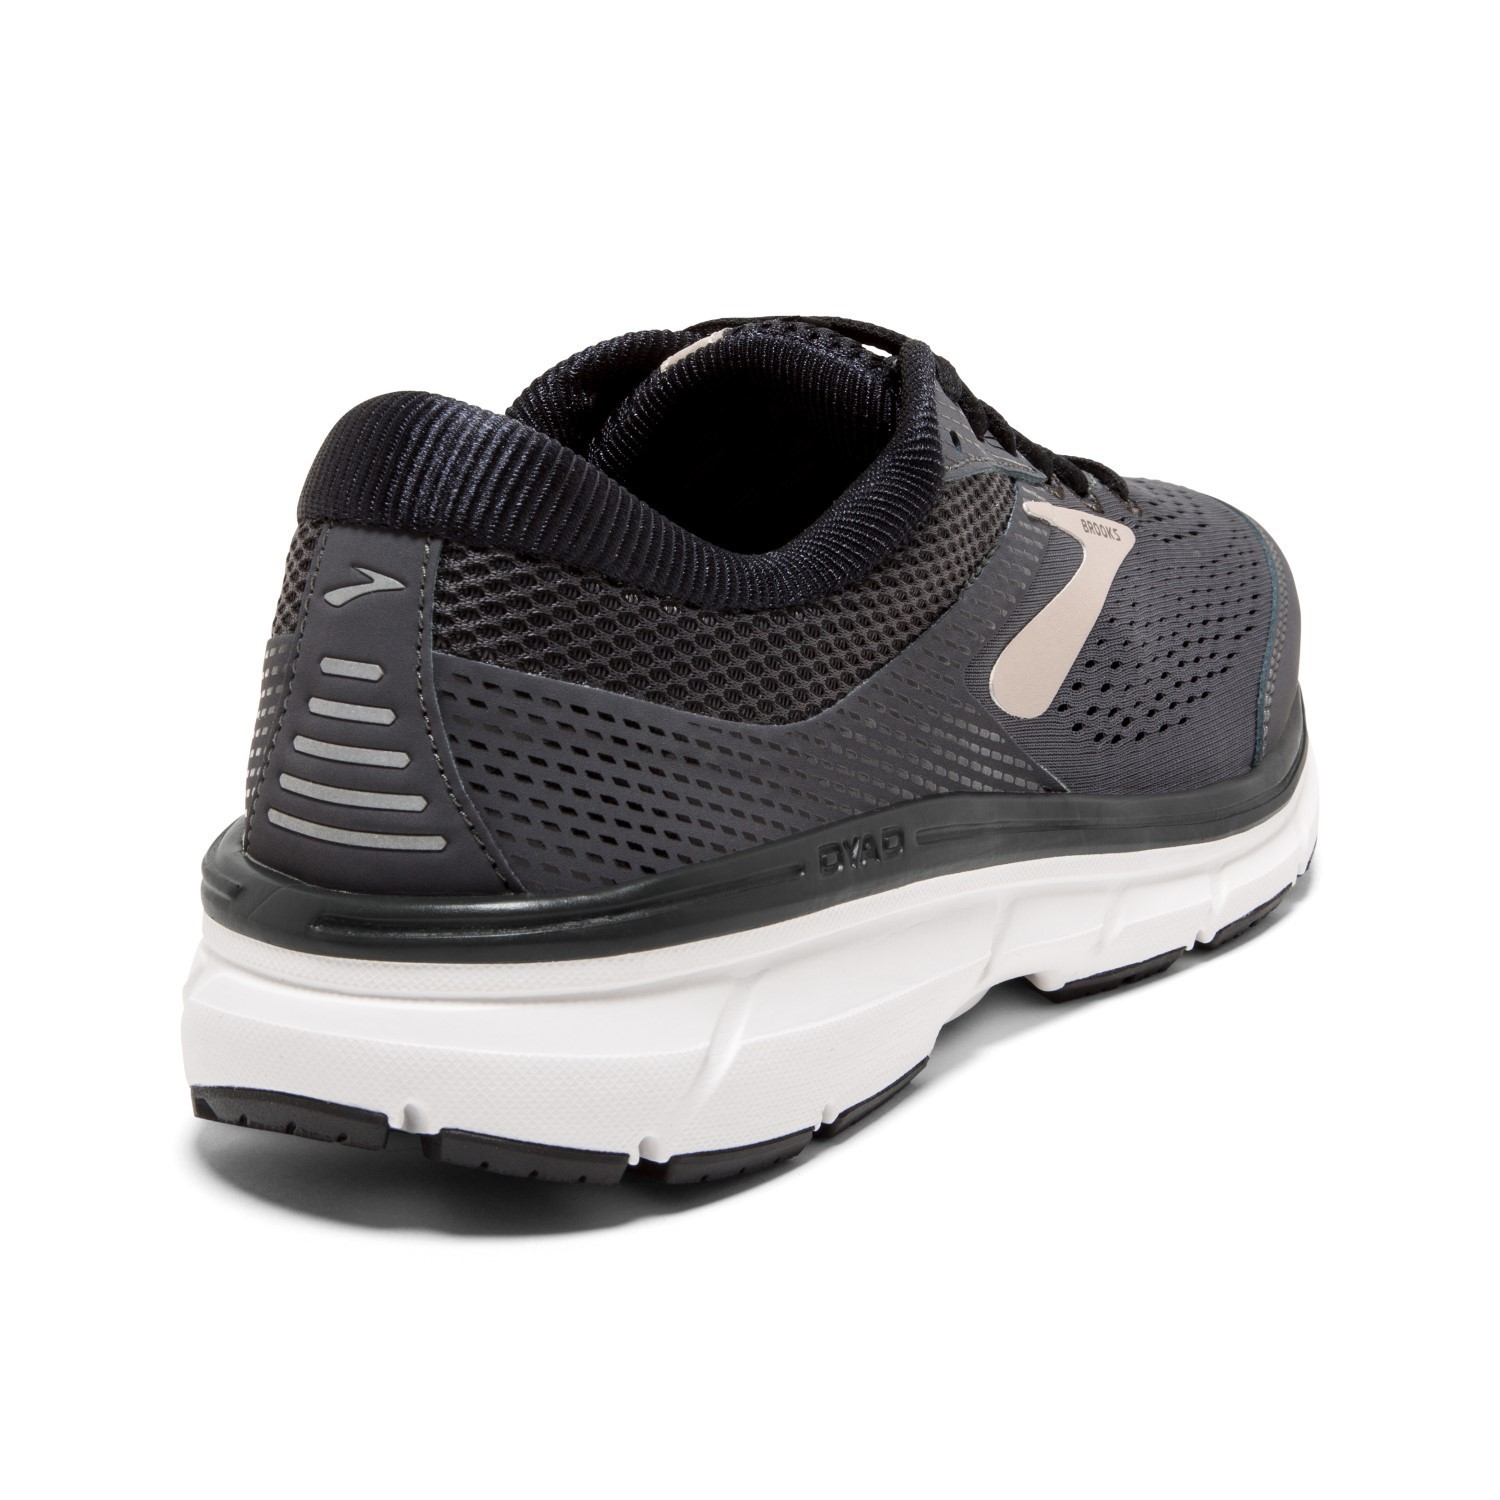 886a1d8ffb4 Brooks Dyad 10 - Mens Running Shoes - Grey Black Tan